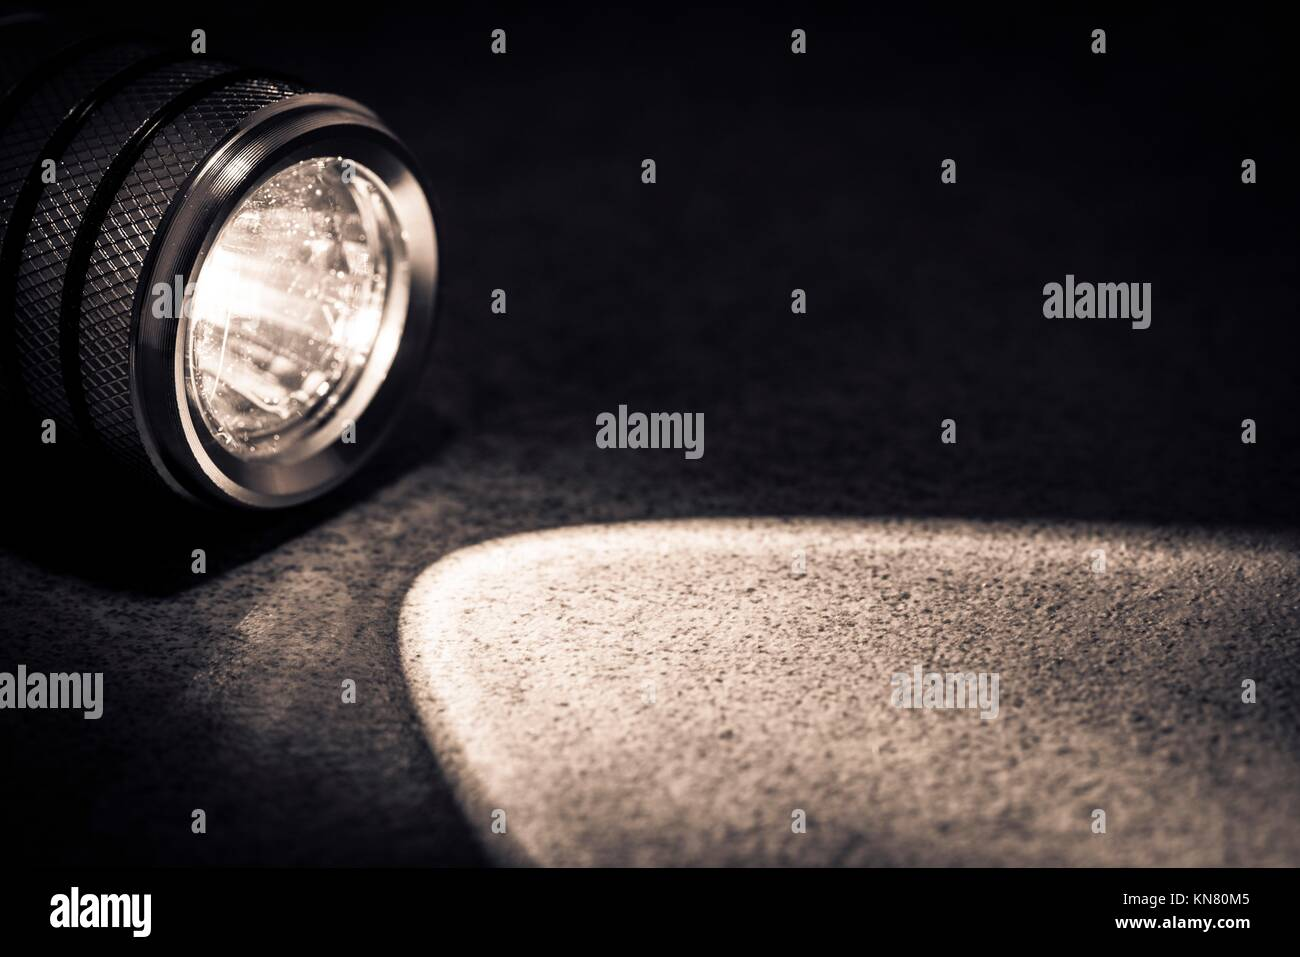 Flashlight and a beam of light in darkness. A modern led light with bright projection on dark stone. Surface with - Stock Image